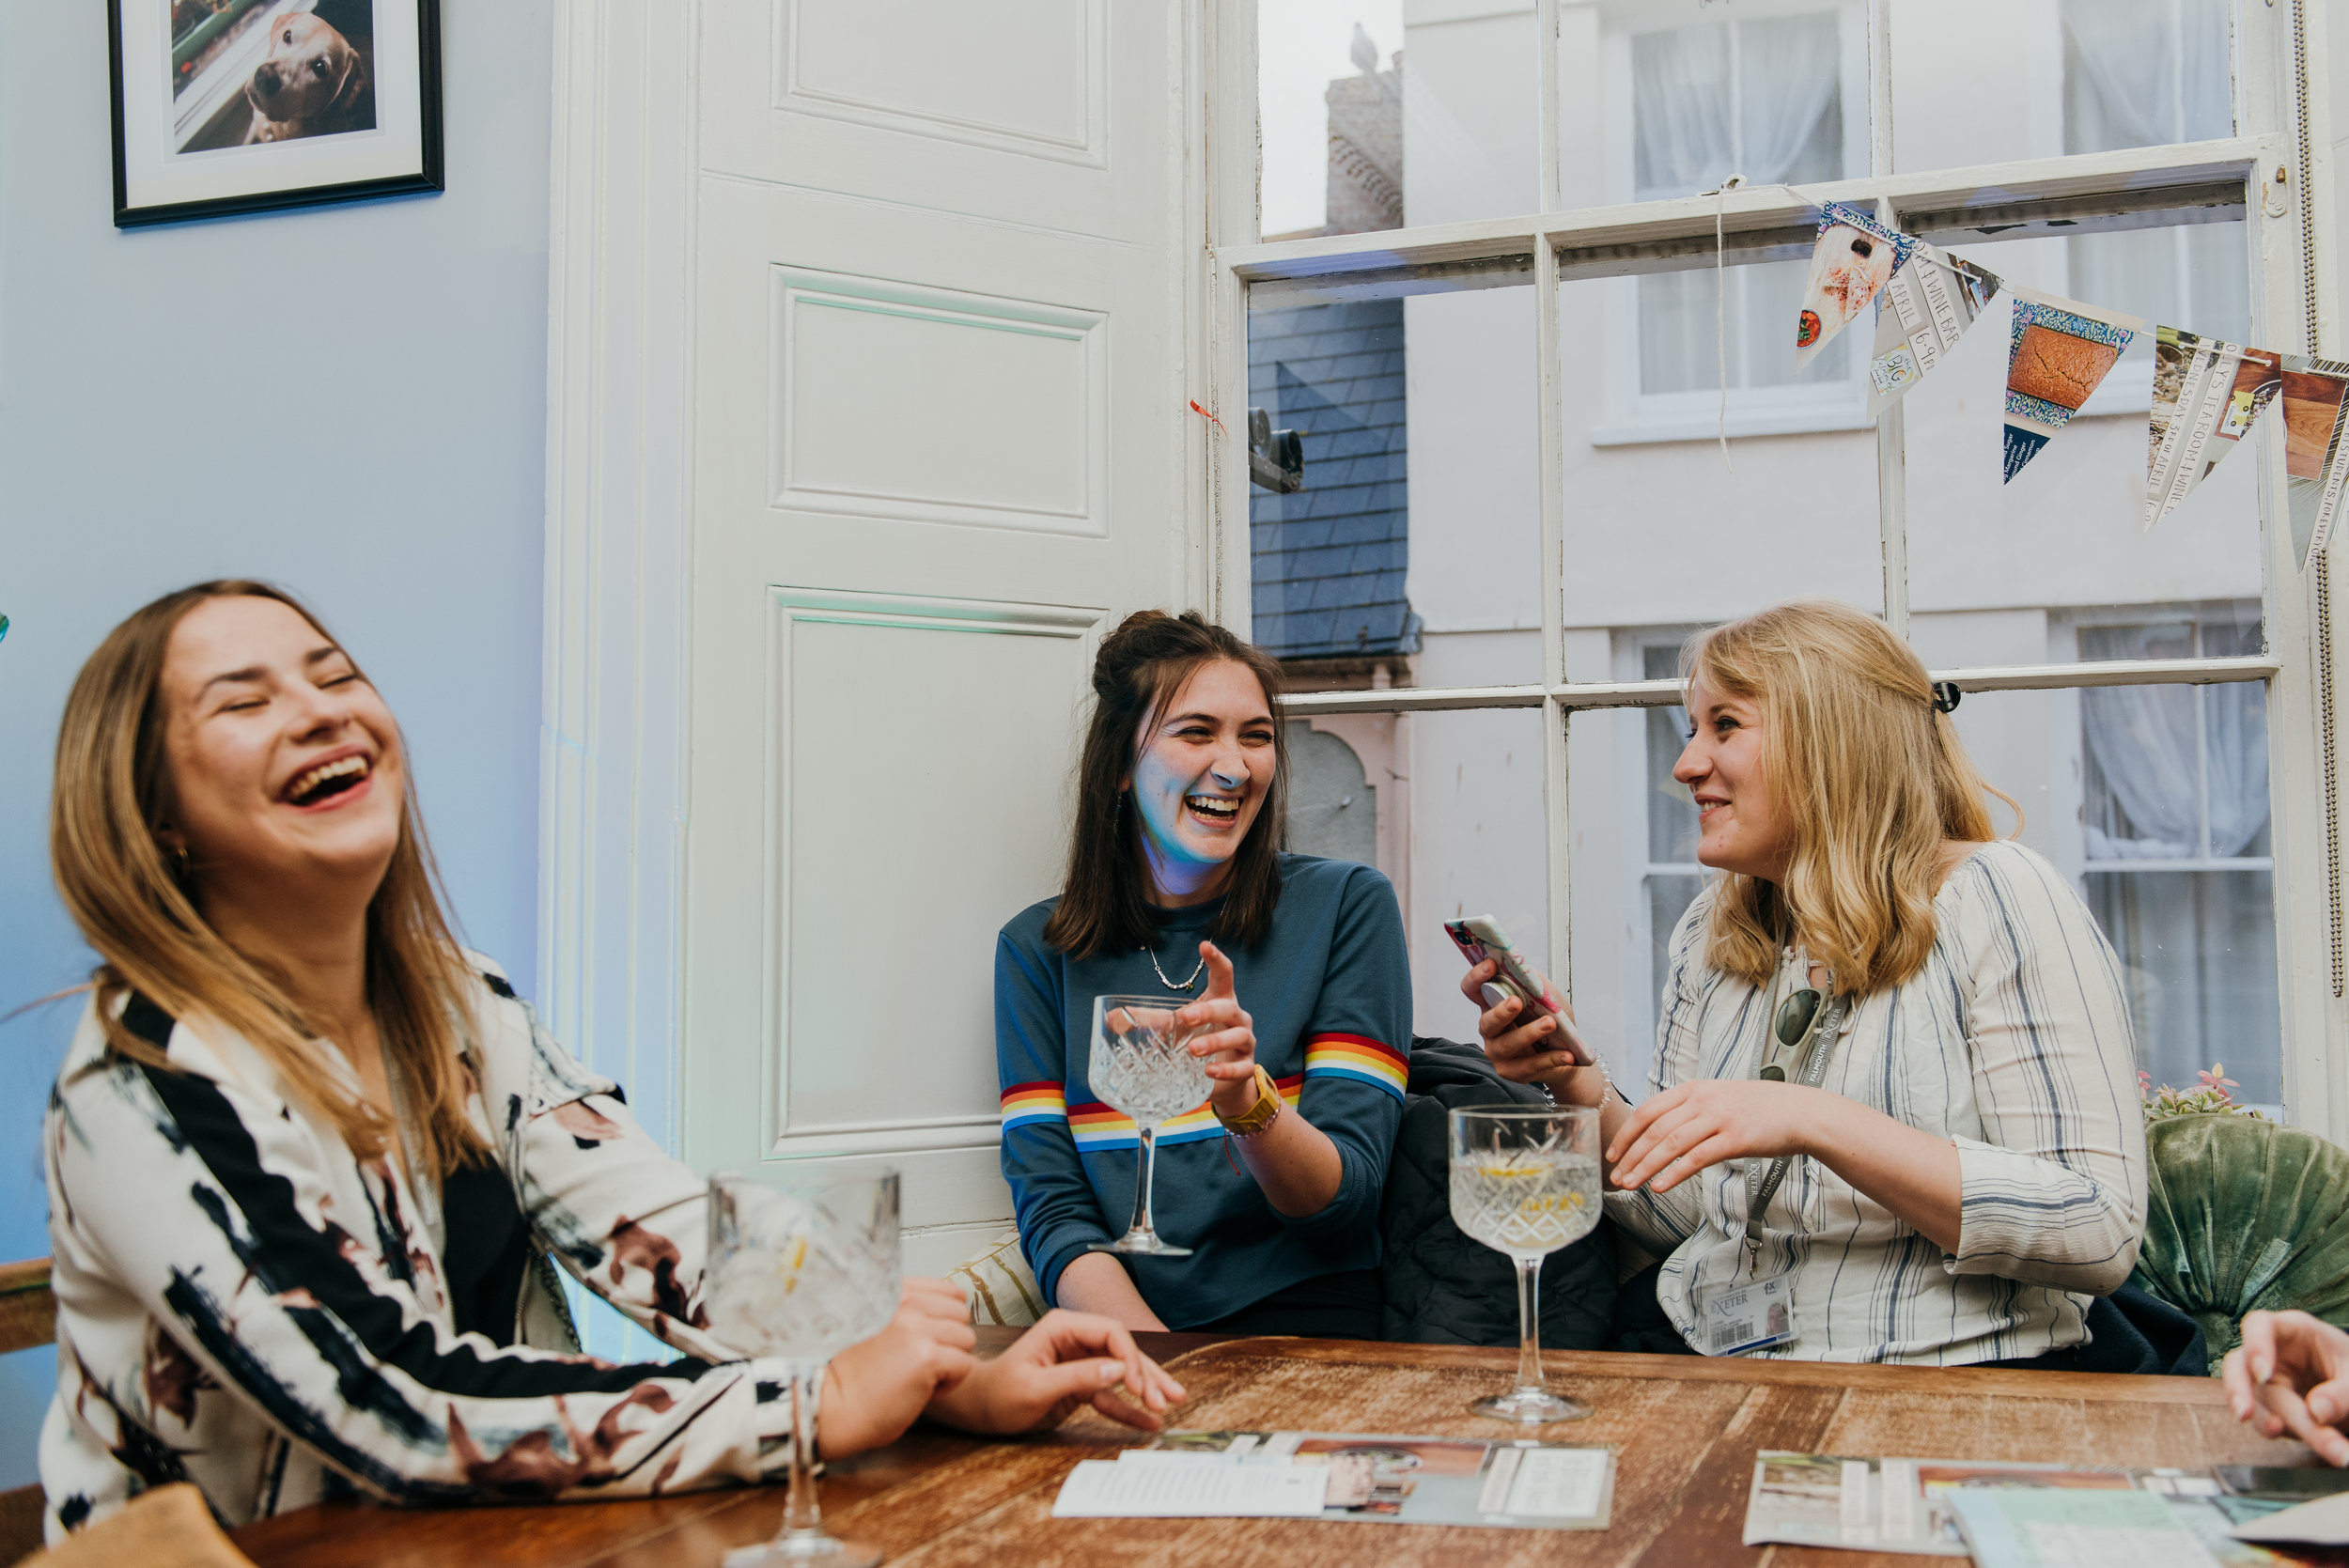 Guests enjoy themselves during the Falmouth Cookbook Publication Evening Launch at Dolly's, organised by third year Creative Event Management students at Falmouth University at Dolly's Tea Room and Wine Bar, Falmouth. 3rd April 2019.